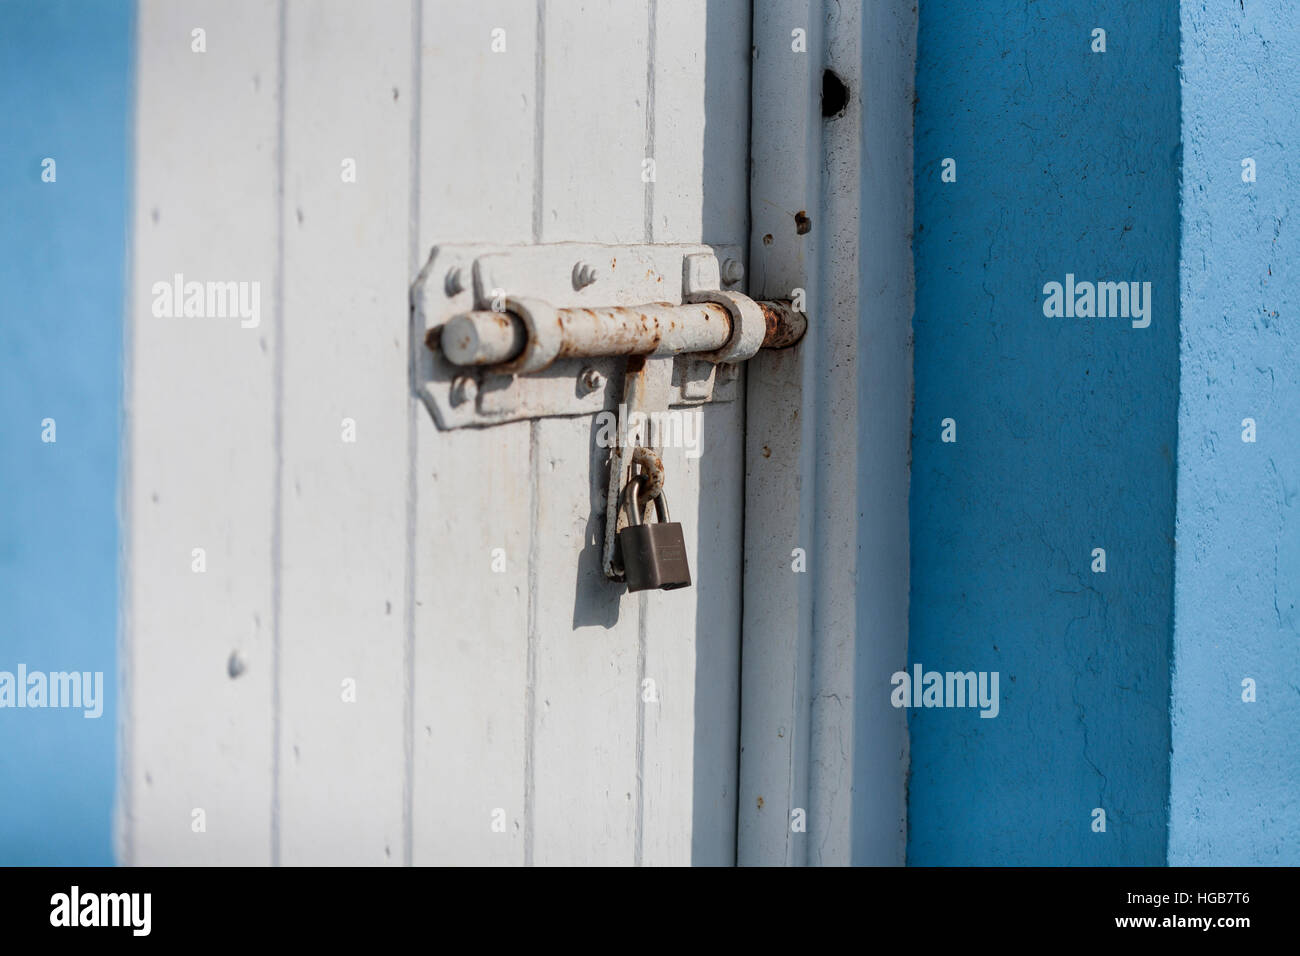 Pad Lock and heavy bolted door. A padlocked white door with a heavy rusting steel bolt holding it secure in a blue painted stucco building. . Hopetown & Pad Lock and heavy bolted door. A padlocked white door with a heavy ...